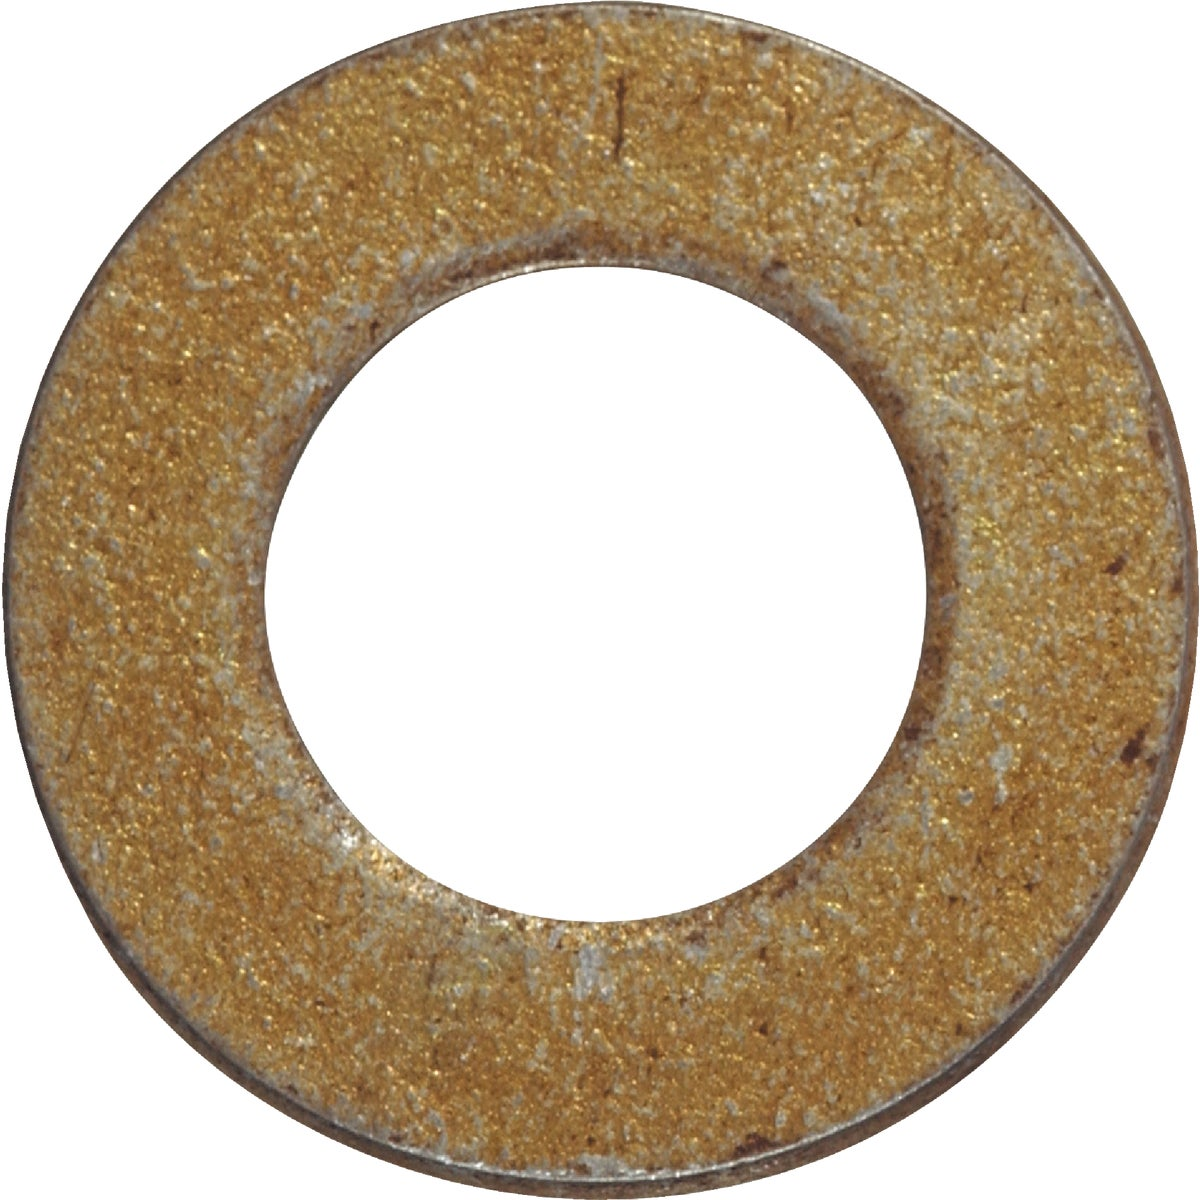 100 3/8HRDND FLAT WASHER - 280303 by Hillman Fastener